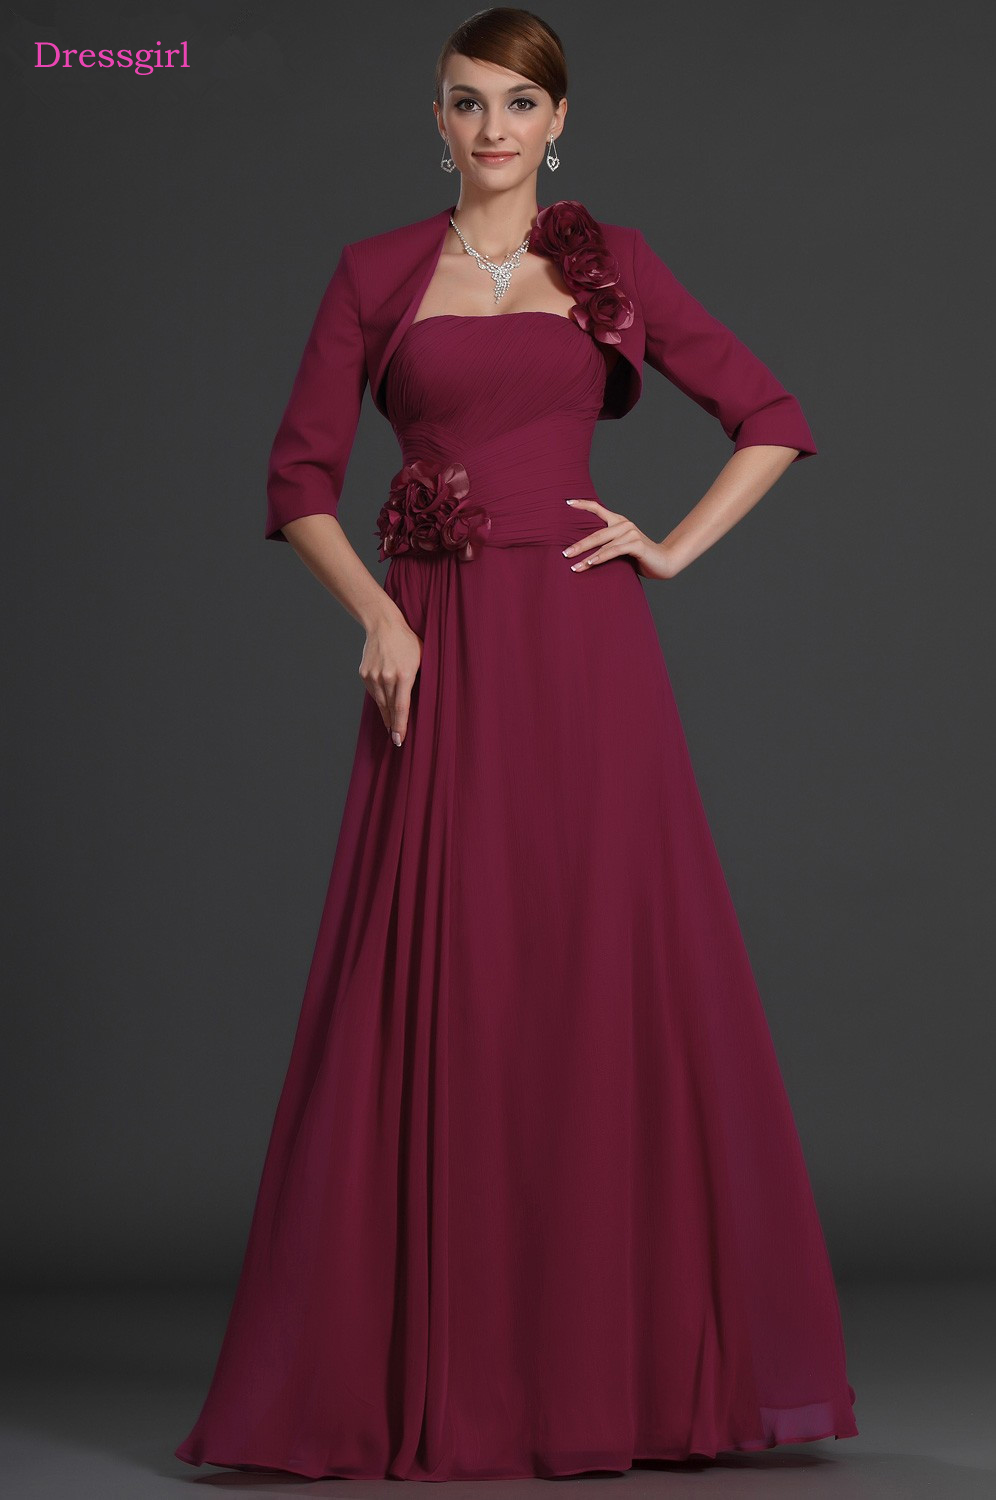 Burgundy 2019 Mother Of The Bride Dresses A Line Strapless Chiffon Flowers Plus Size Long Elegant Groom Mother Dresses Wedding Buy At The Price Of 78 00 In Aliexpress Com Imall Com,Wedding Guest White Lace Dress Styles In Ghana